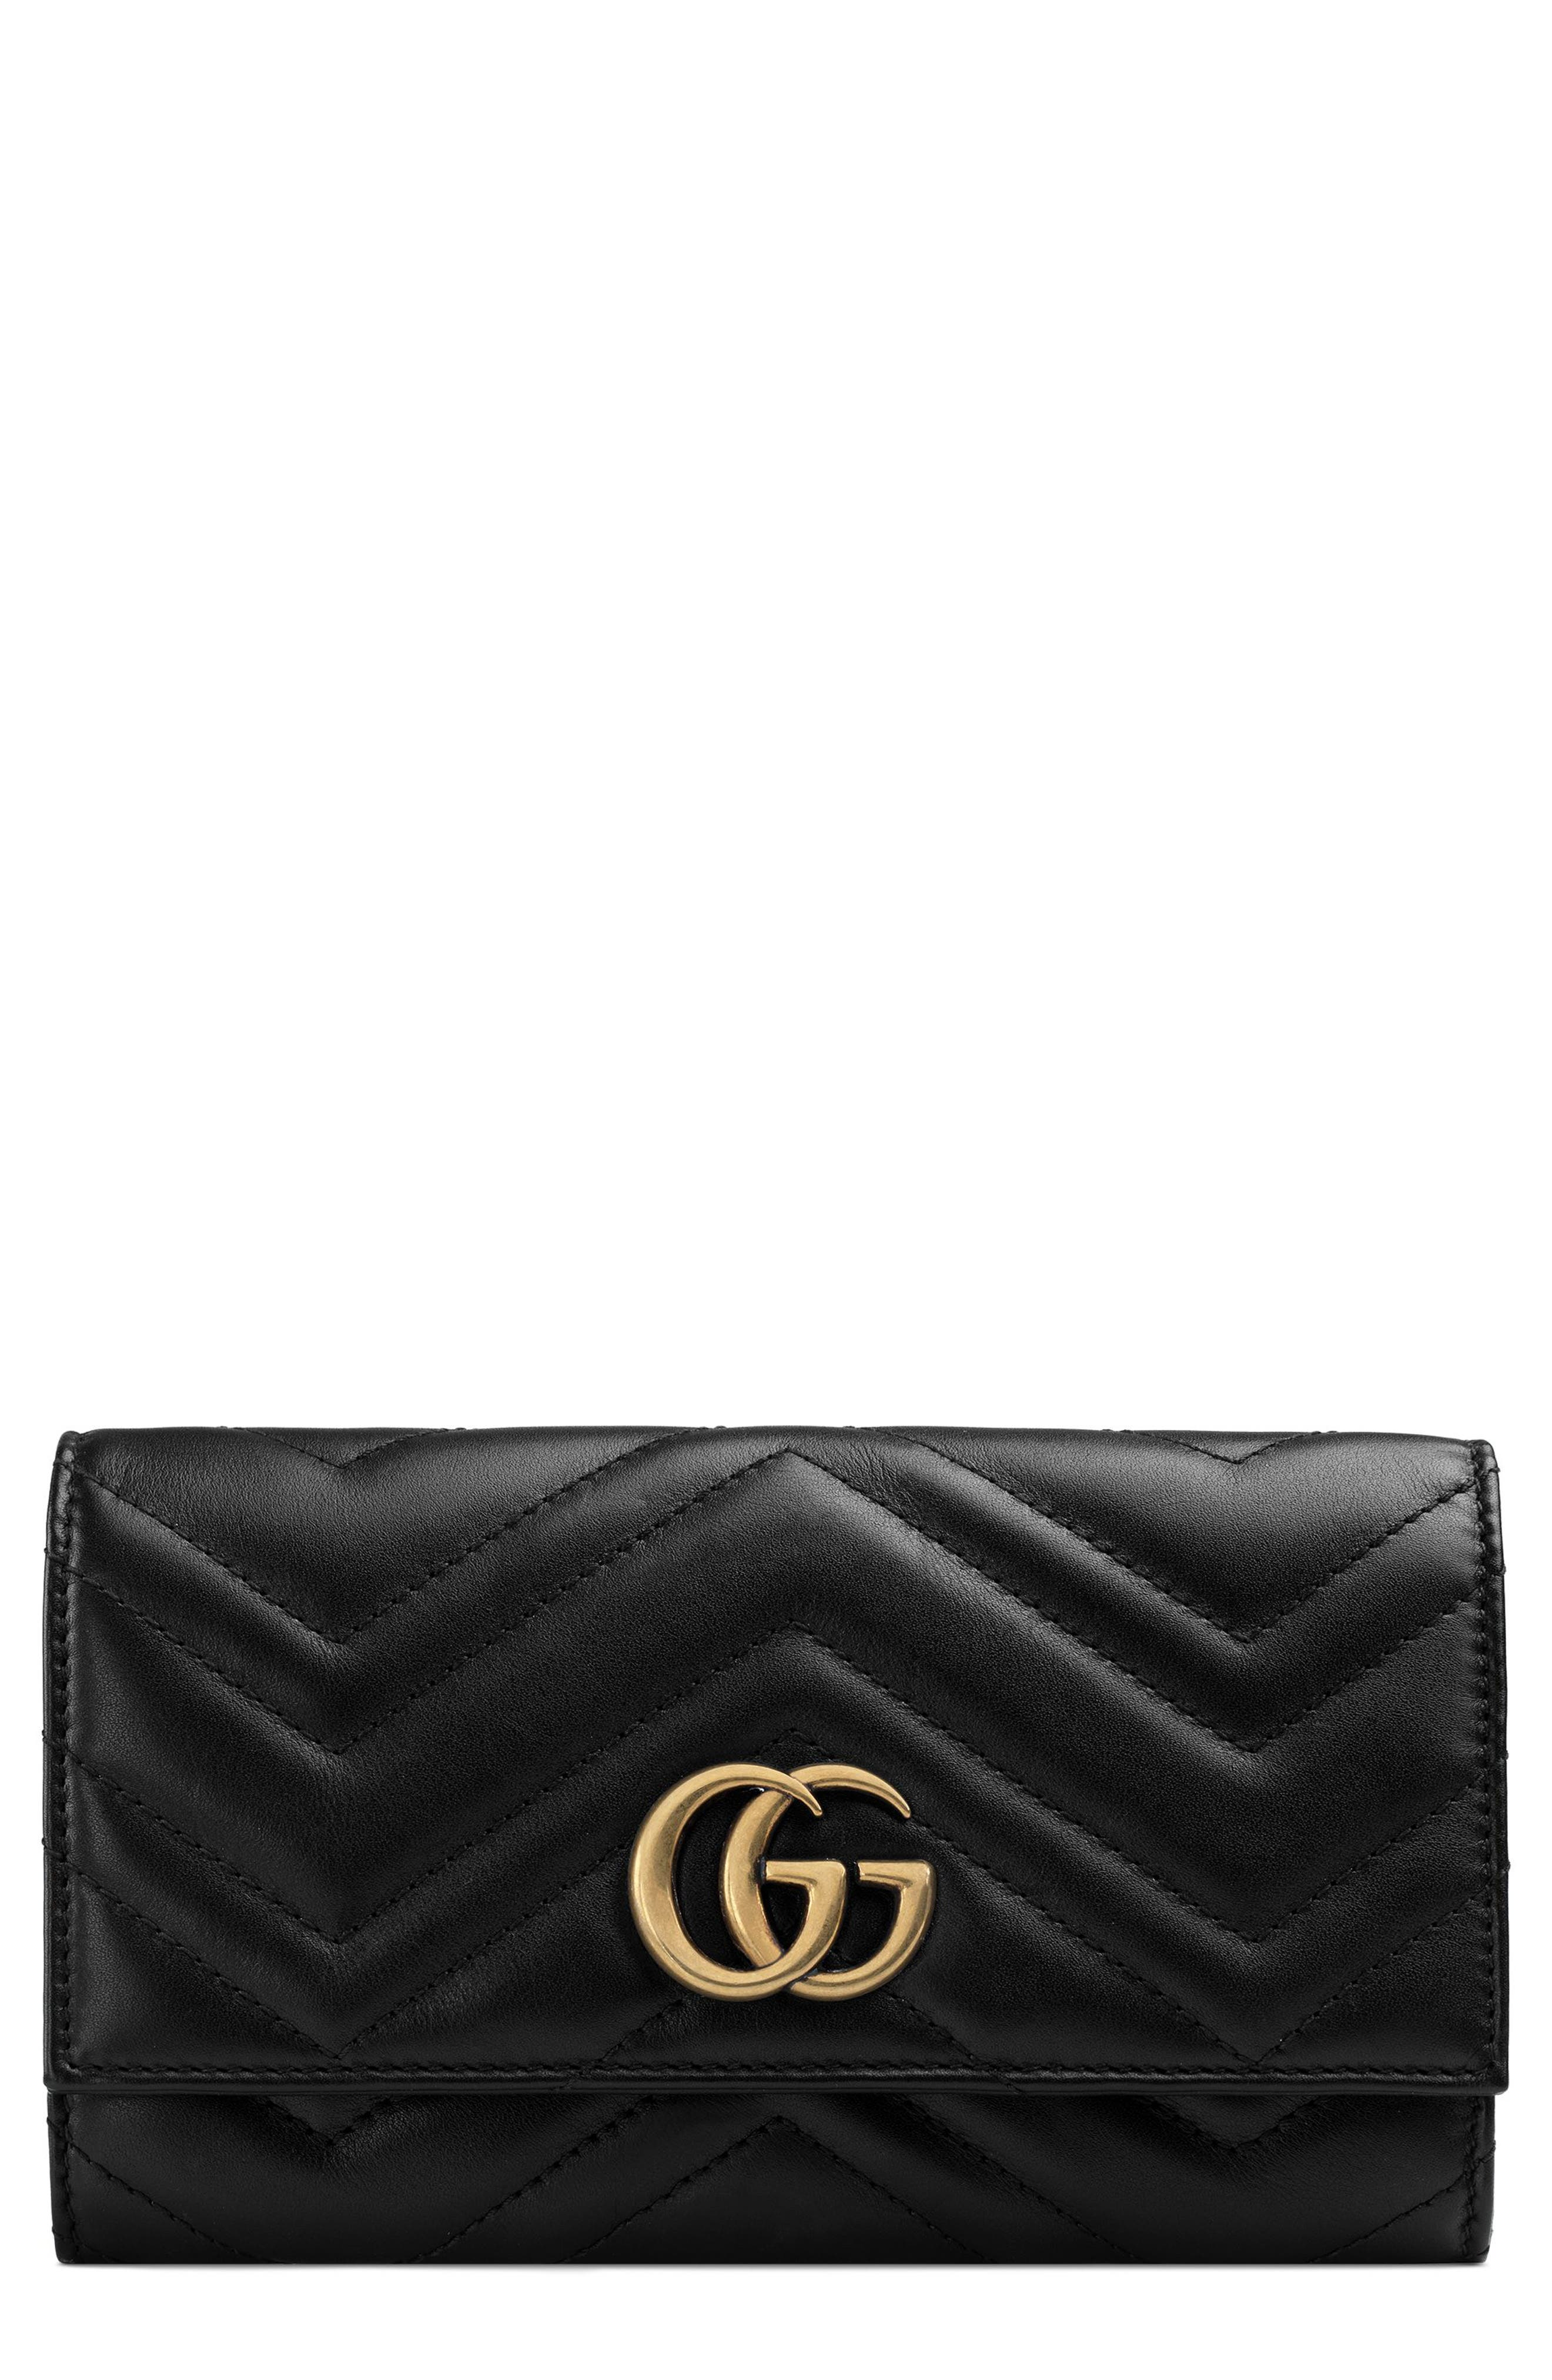 Marmont 2.0 Leather Continental Wallet,                             Main thumbnail 1, color,                             NERO